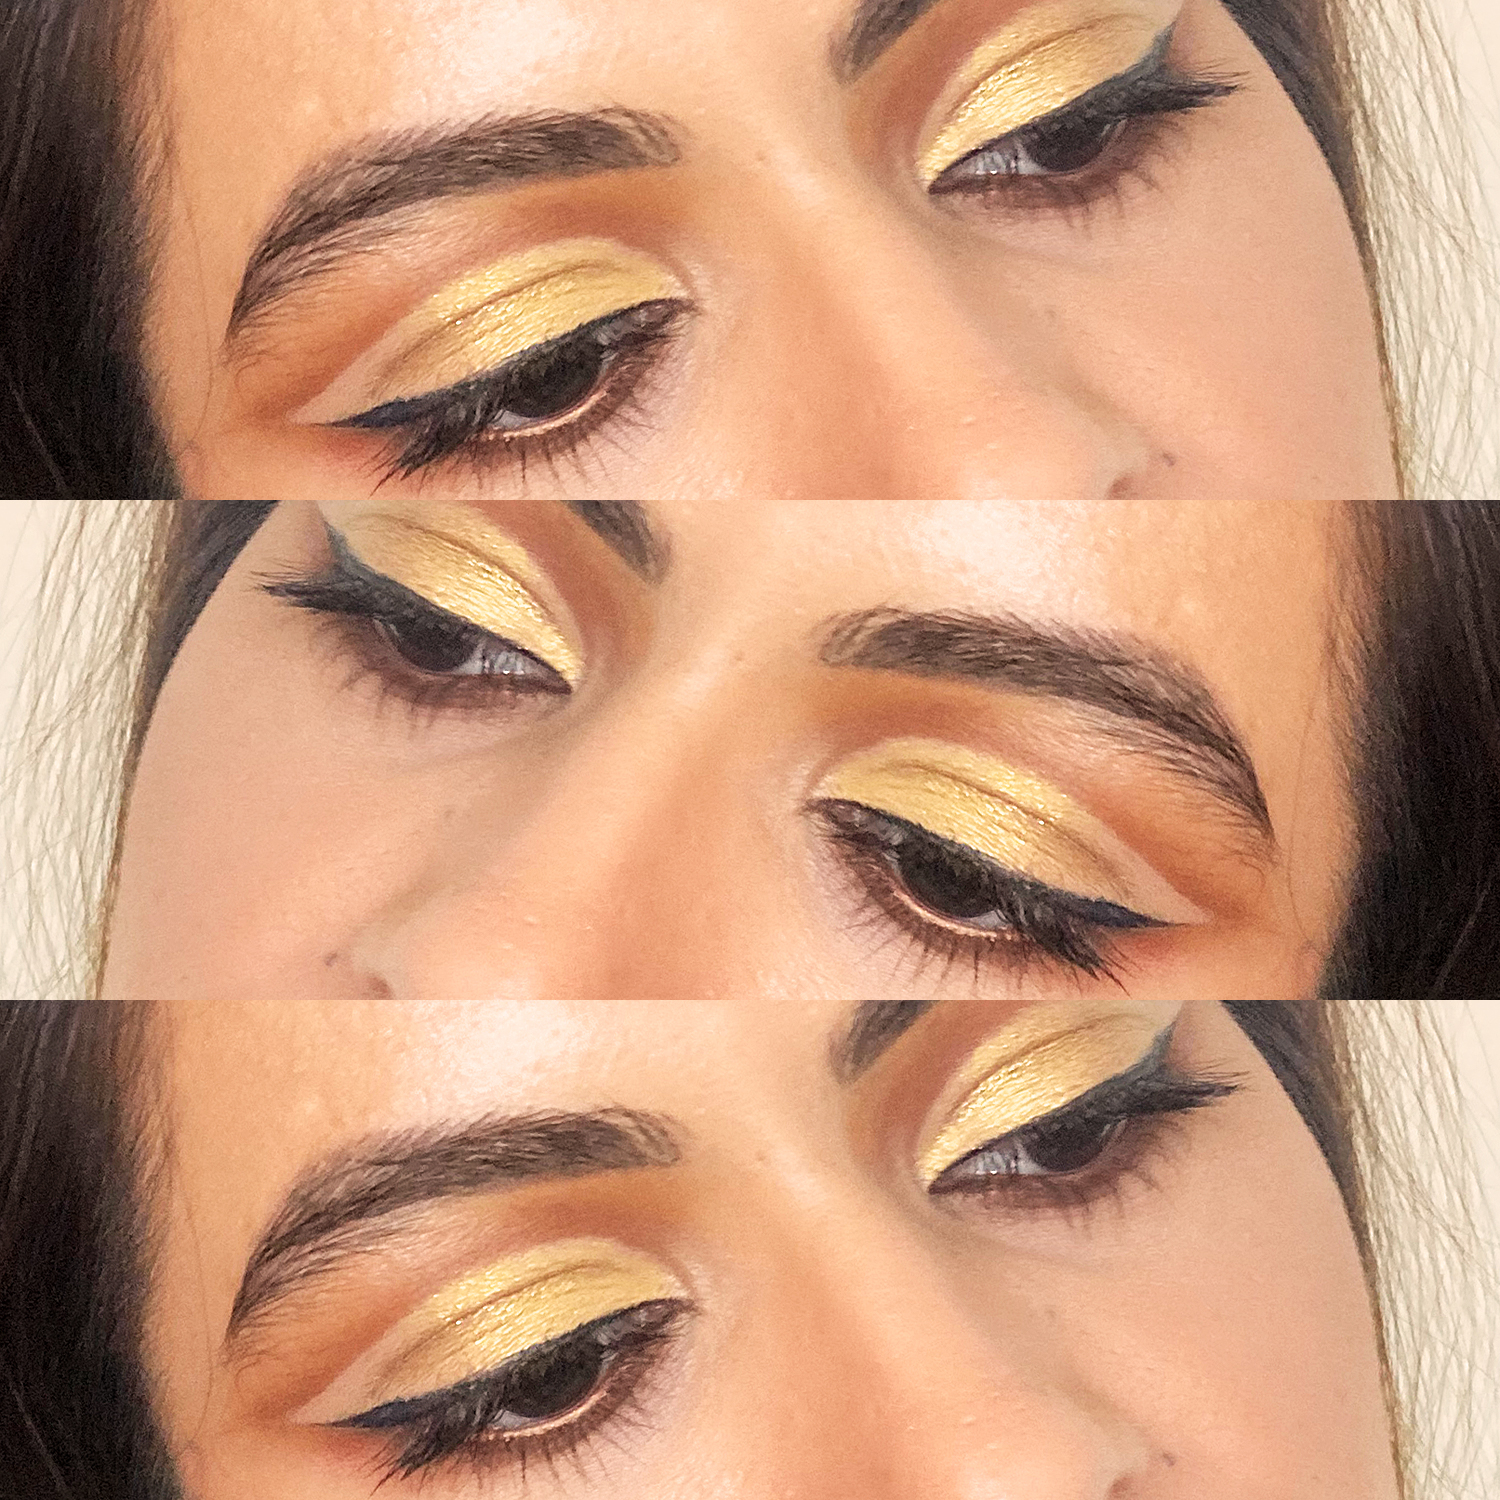 My First Ever Cut Crease! - 2